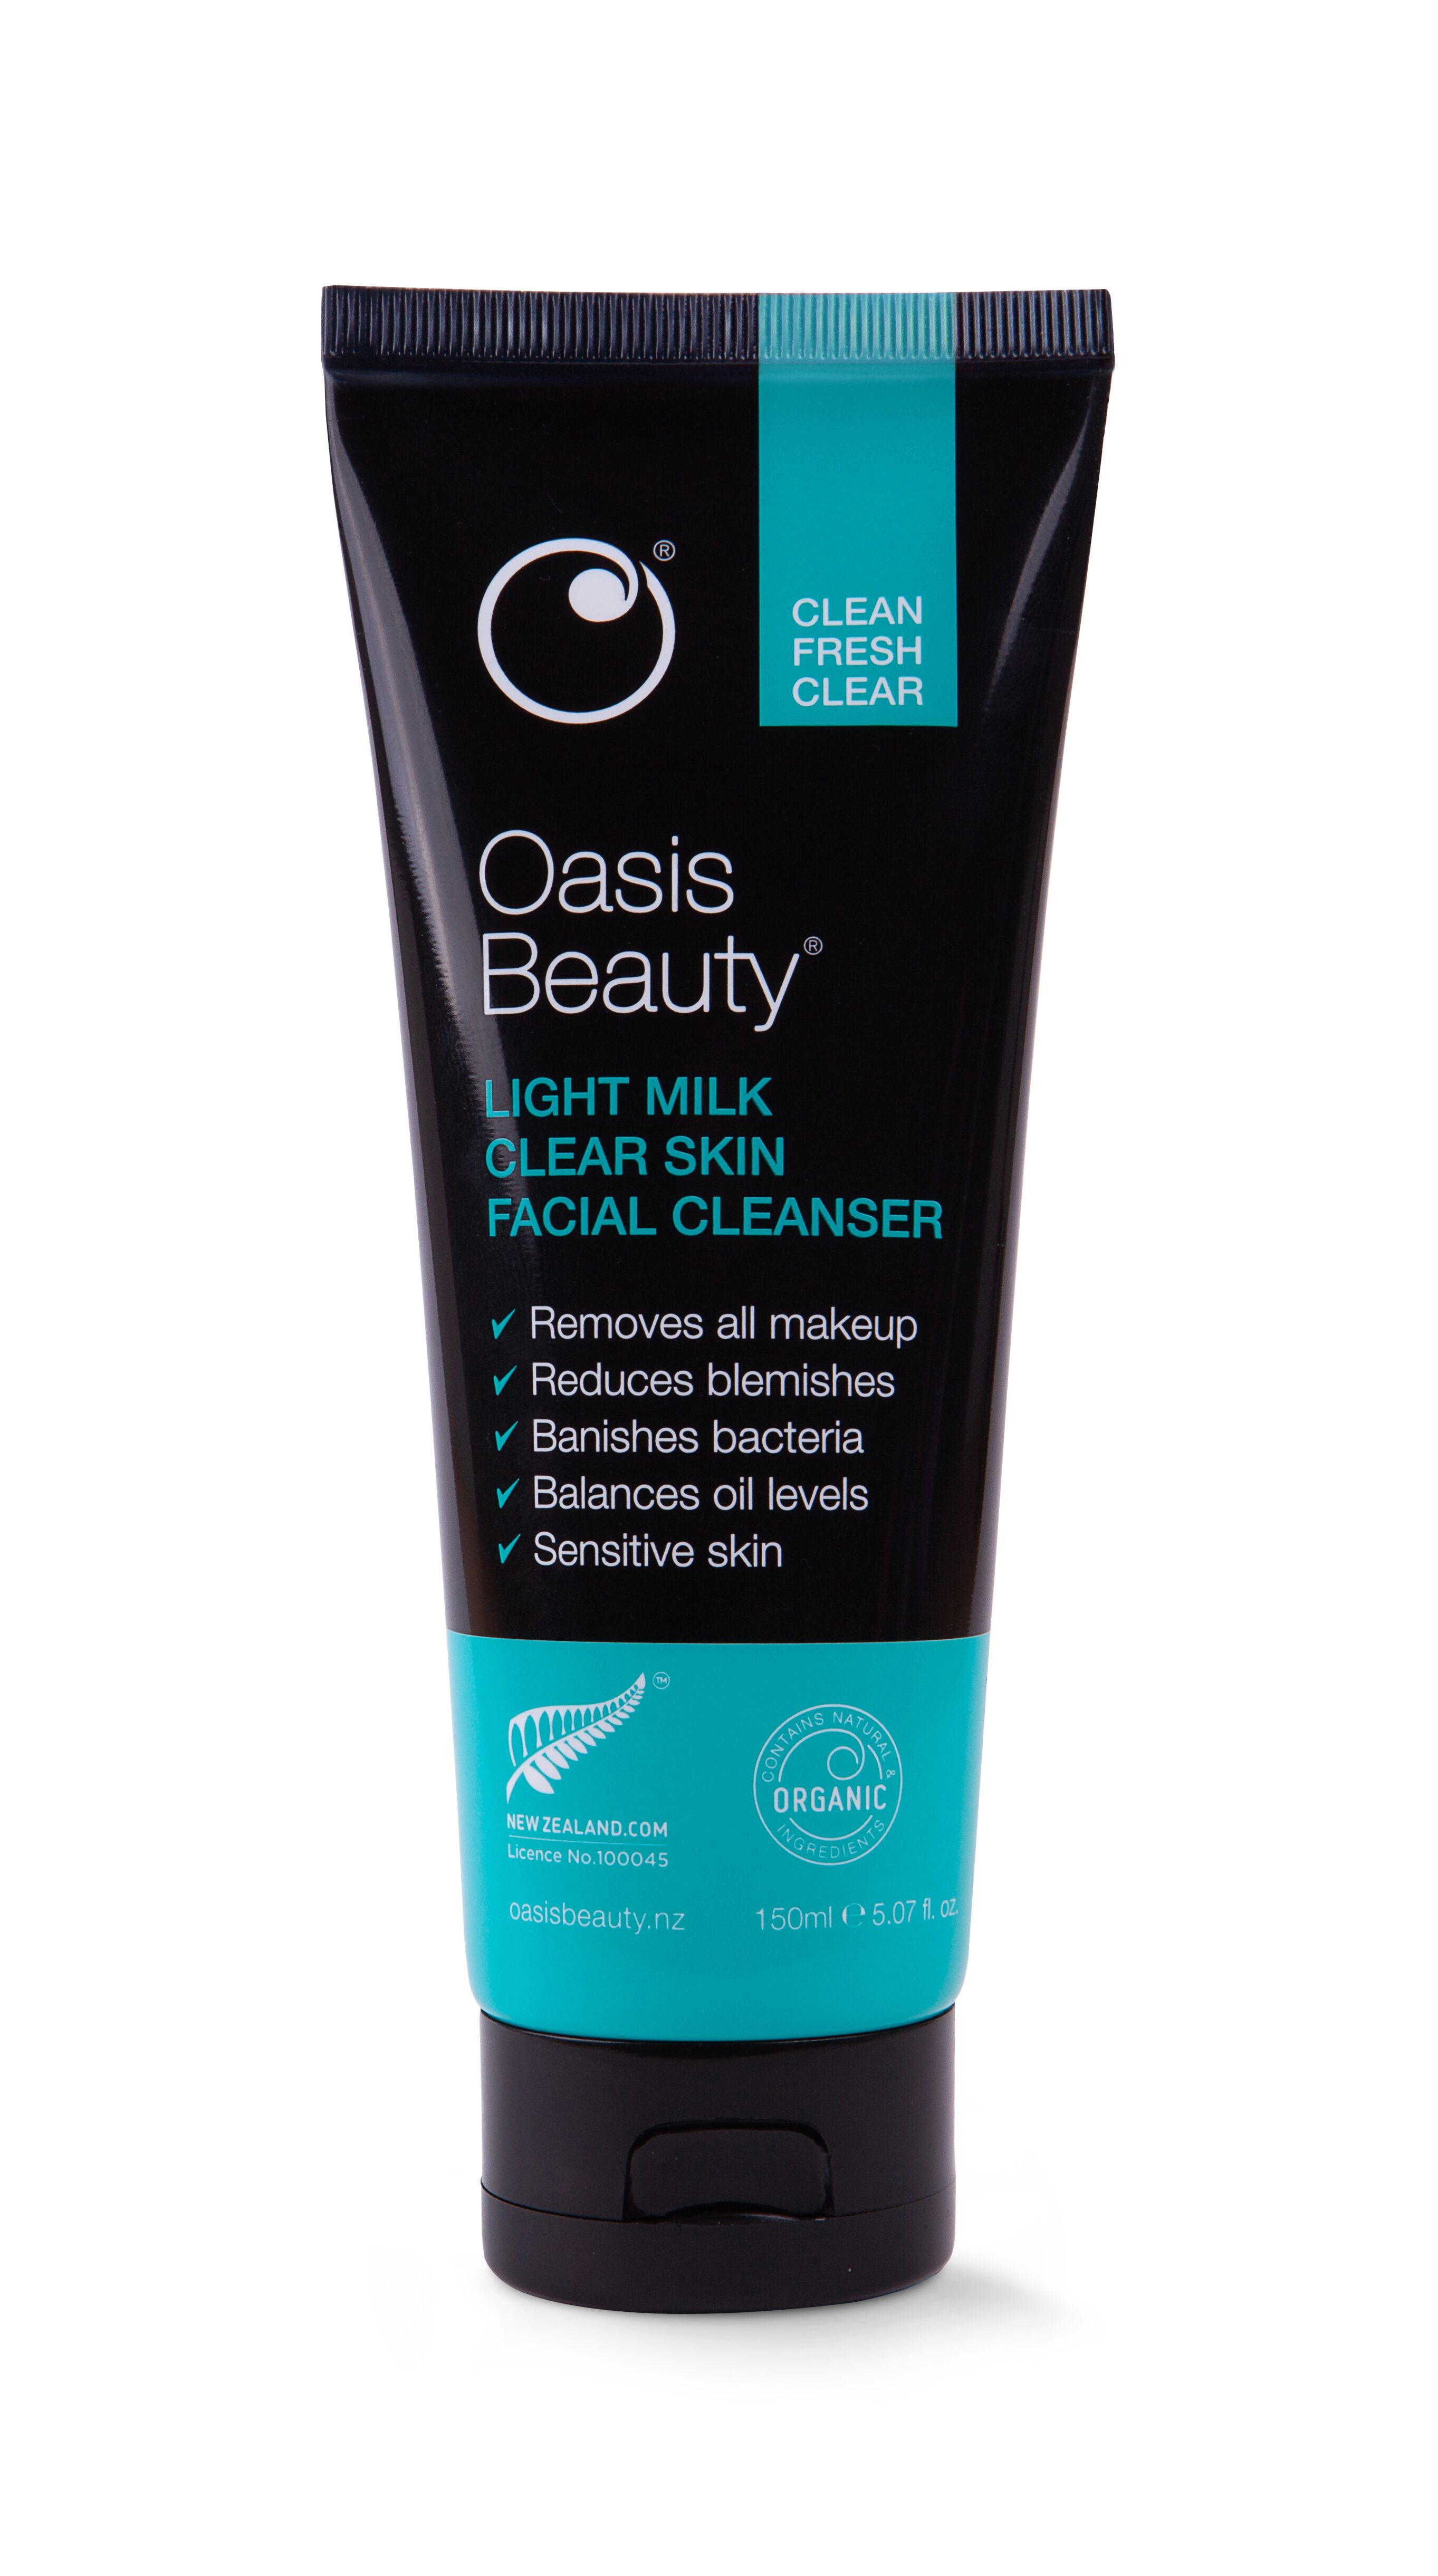 Oasis Beauty - Light Milk Clear Skin Facial Cleanser